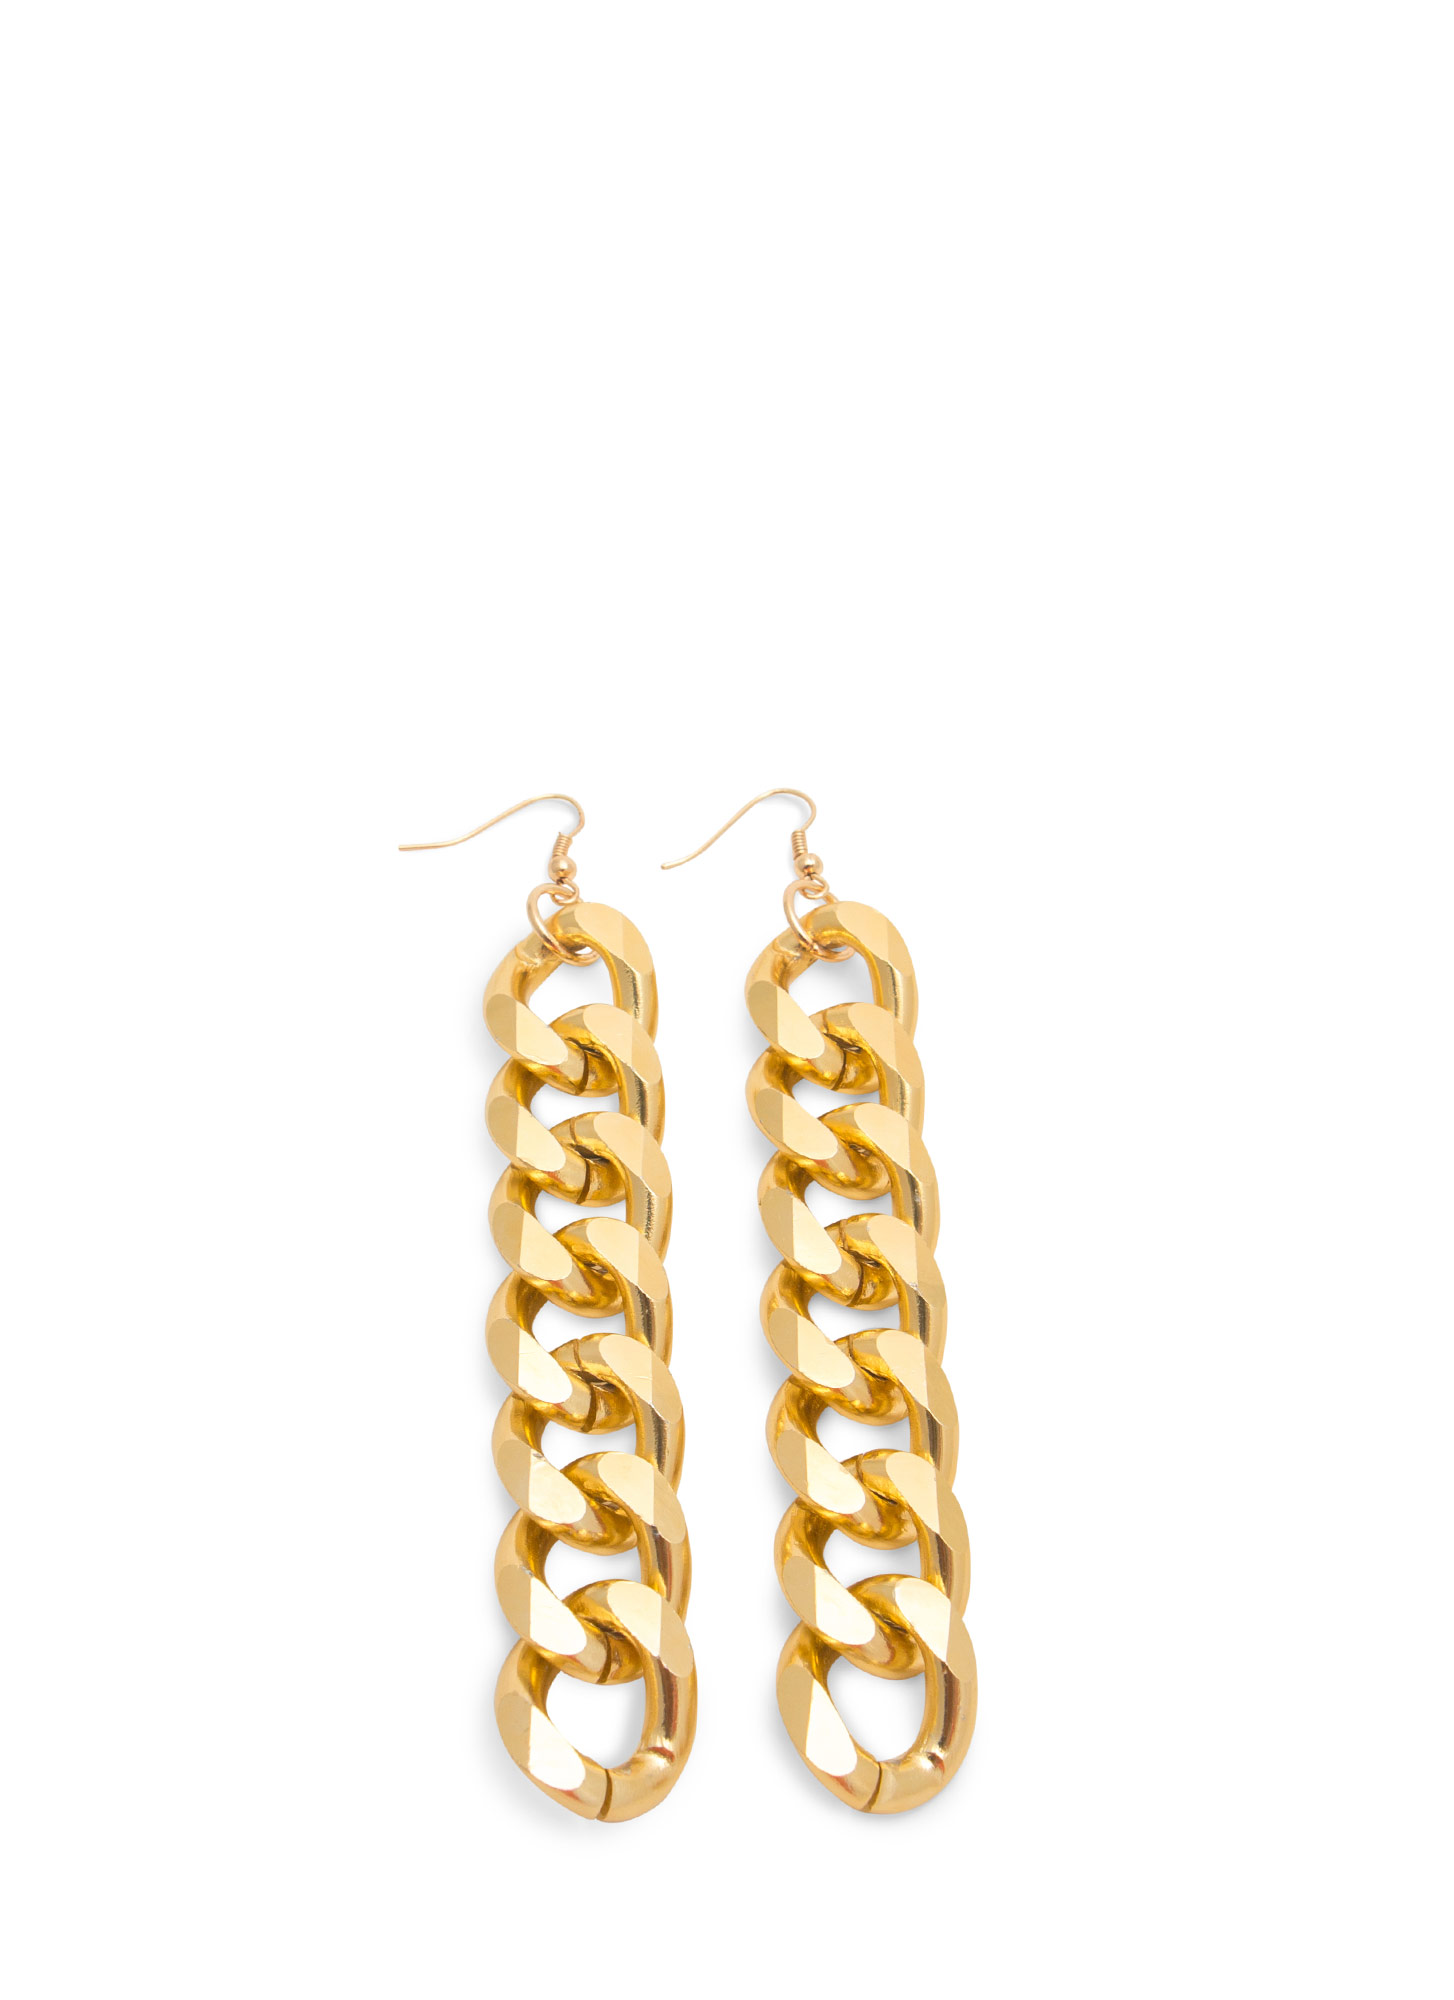 Chunky Curb Link Chain Earrings GOLD